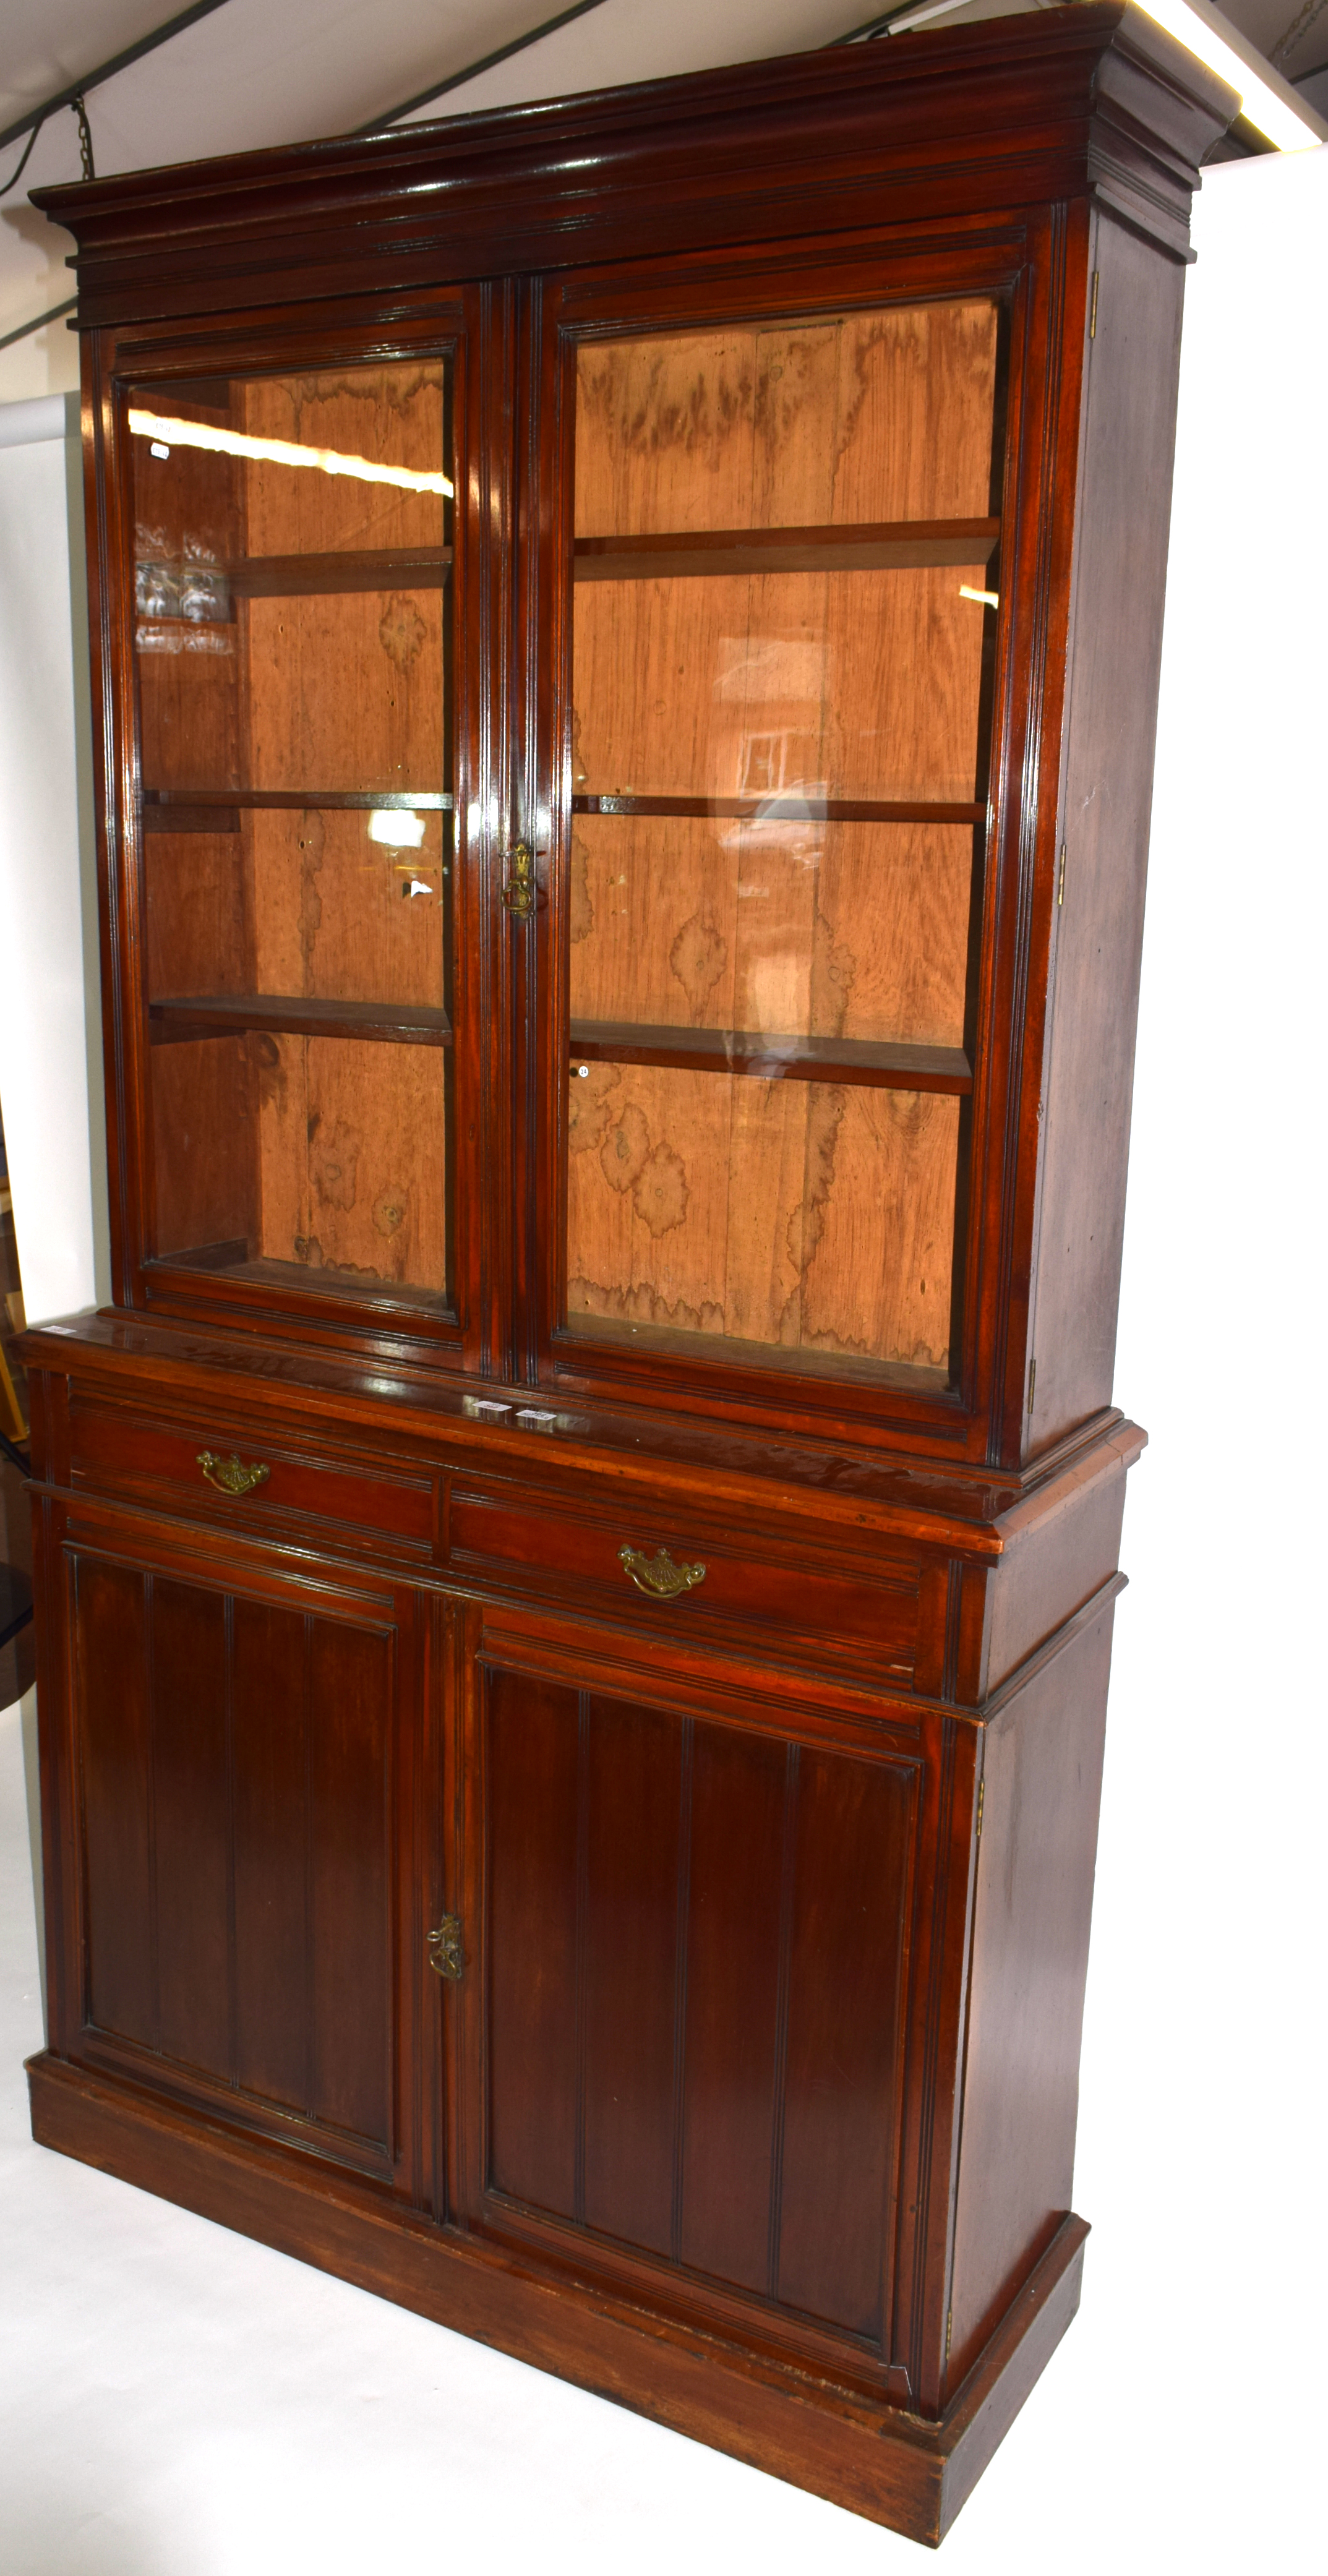 Full height mahogany side cabinet with glazed bookcase raised over double cupboard, width approx - Image 6 of 6